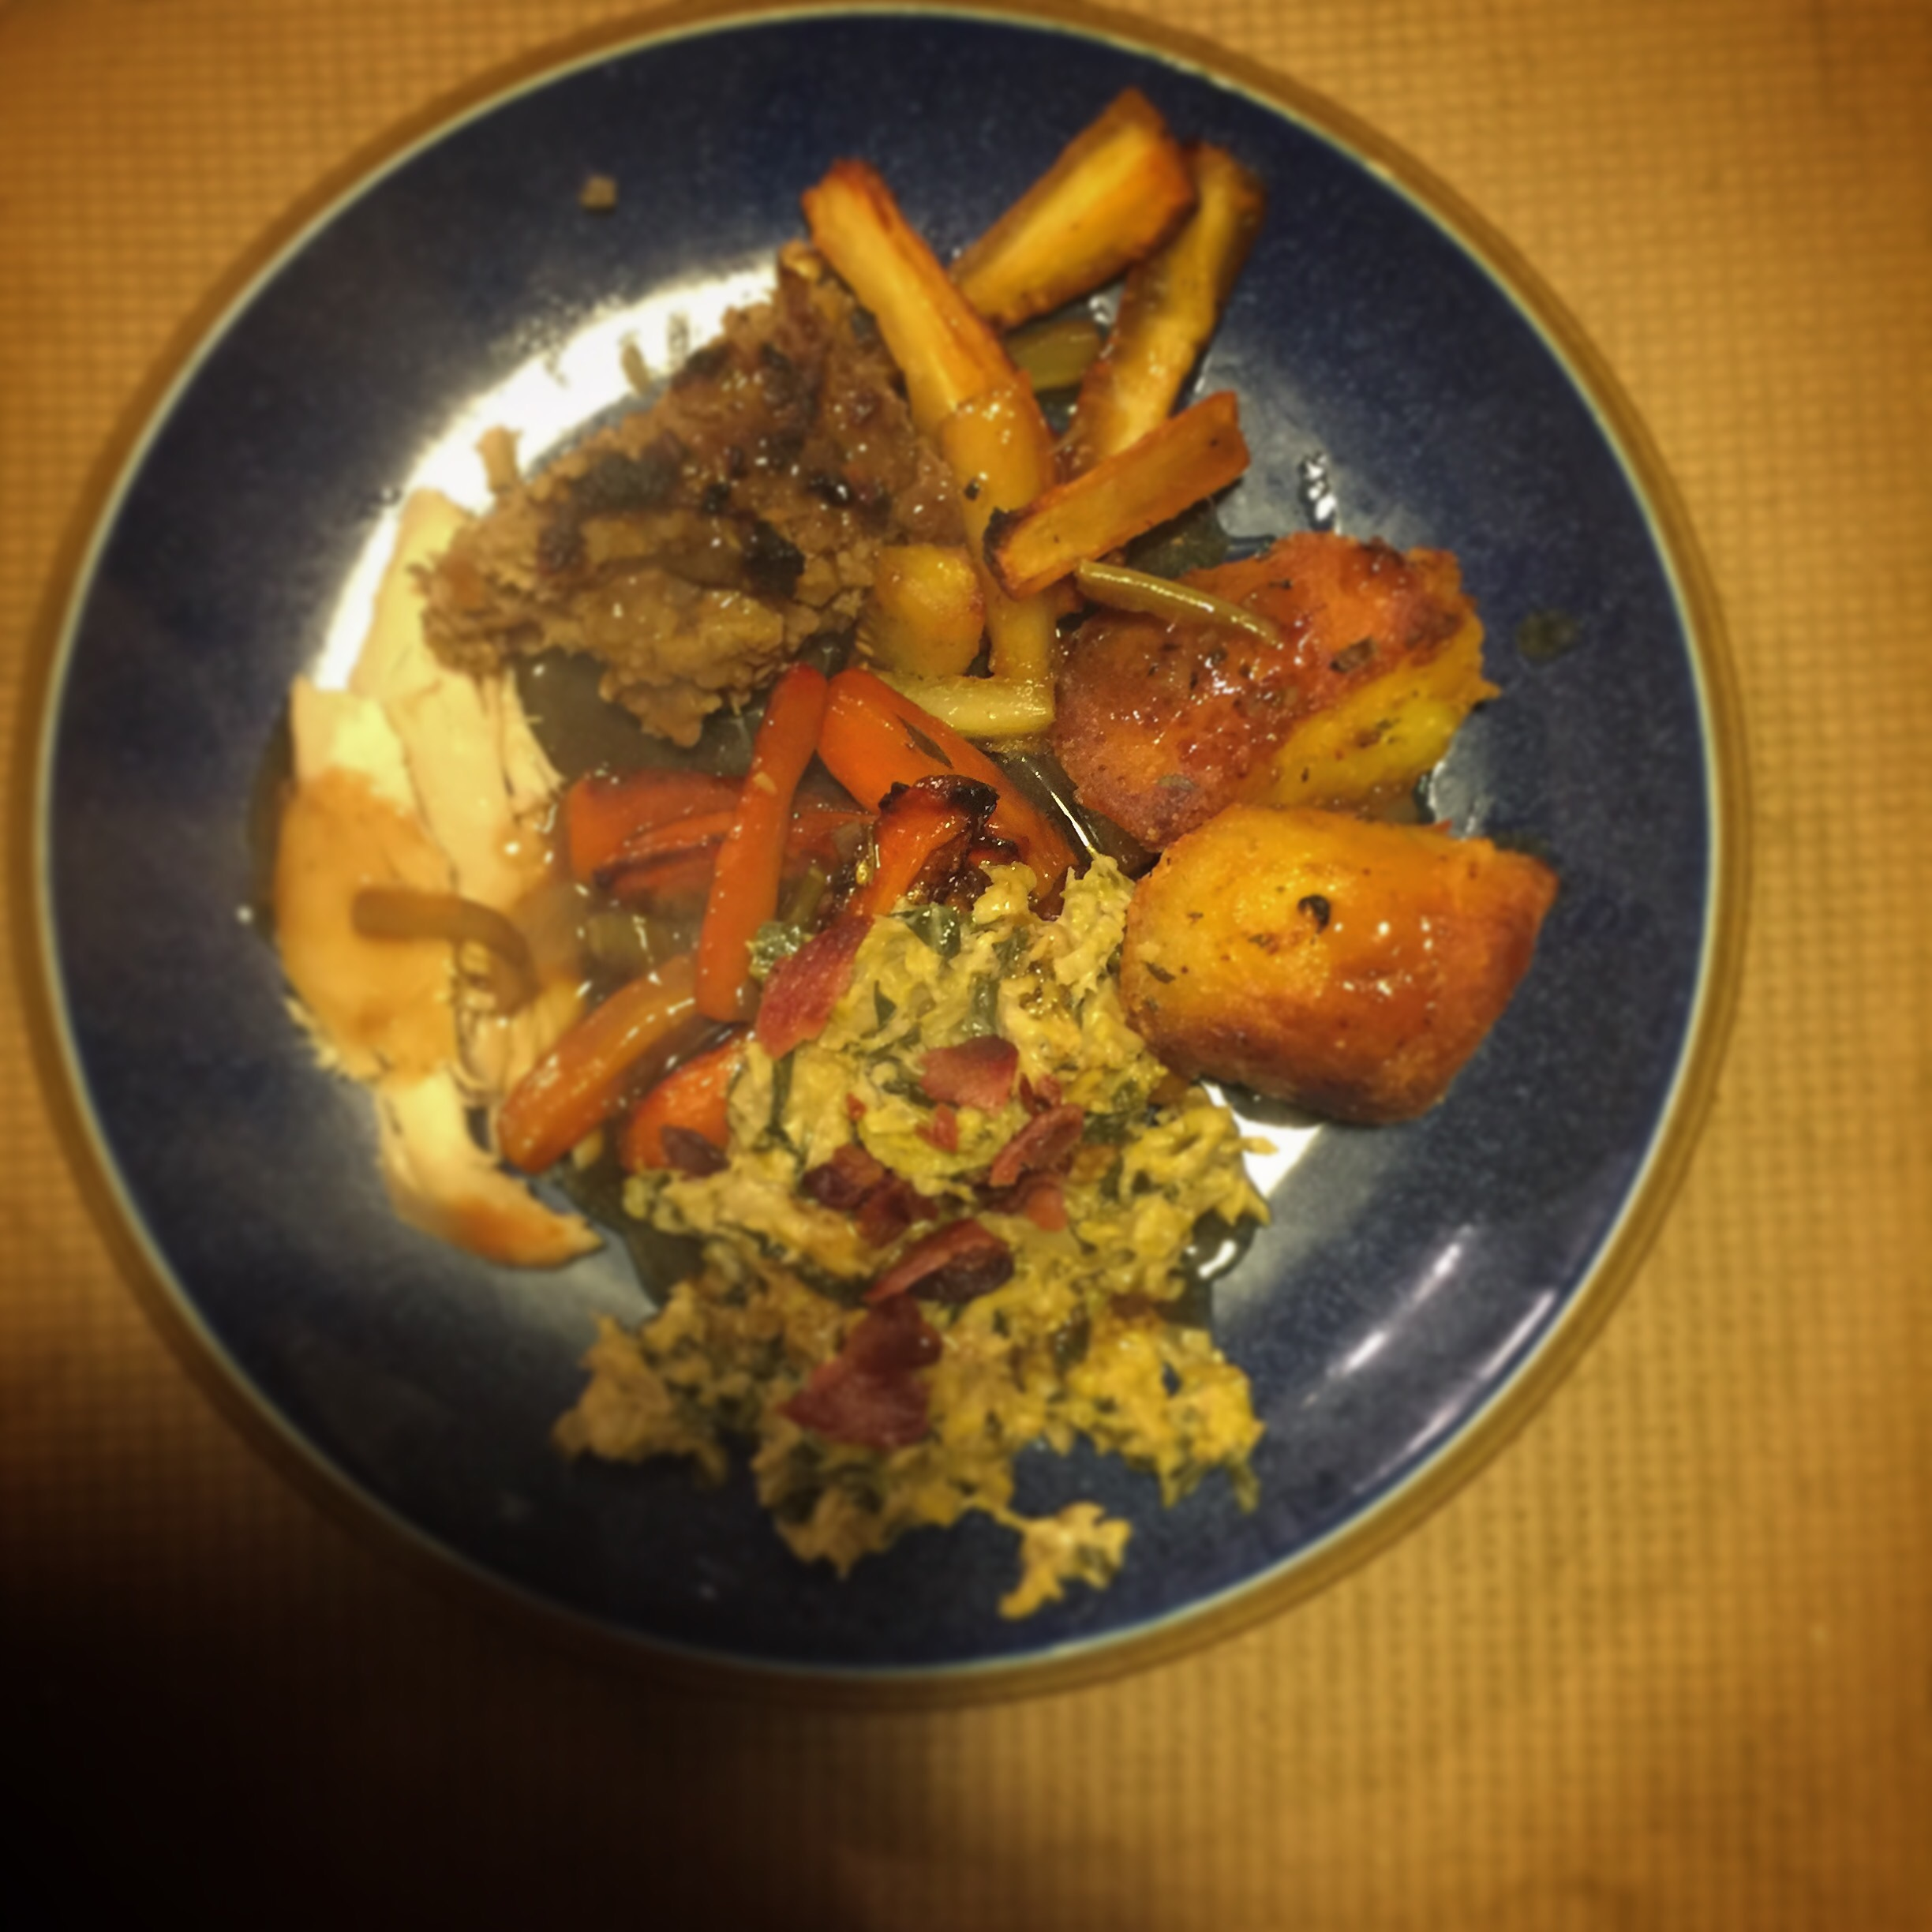 a delicious roast dinner featuring the roasted carrots